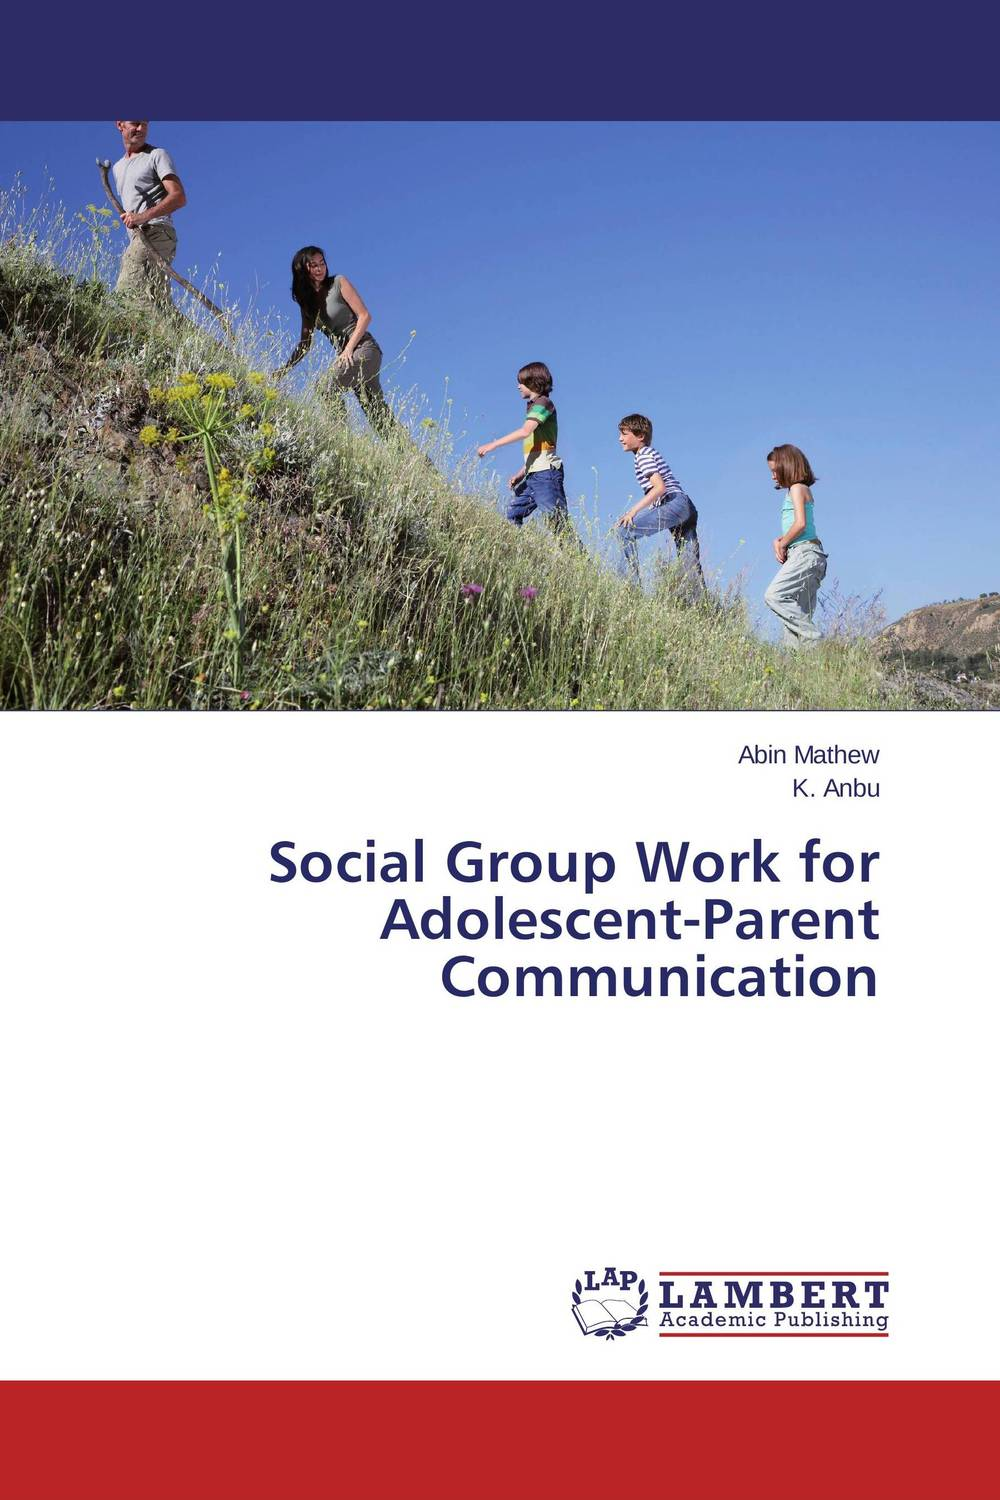 Social Group Work for Adolescent-Parent Communication seeing things as they are